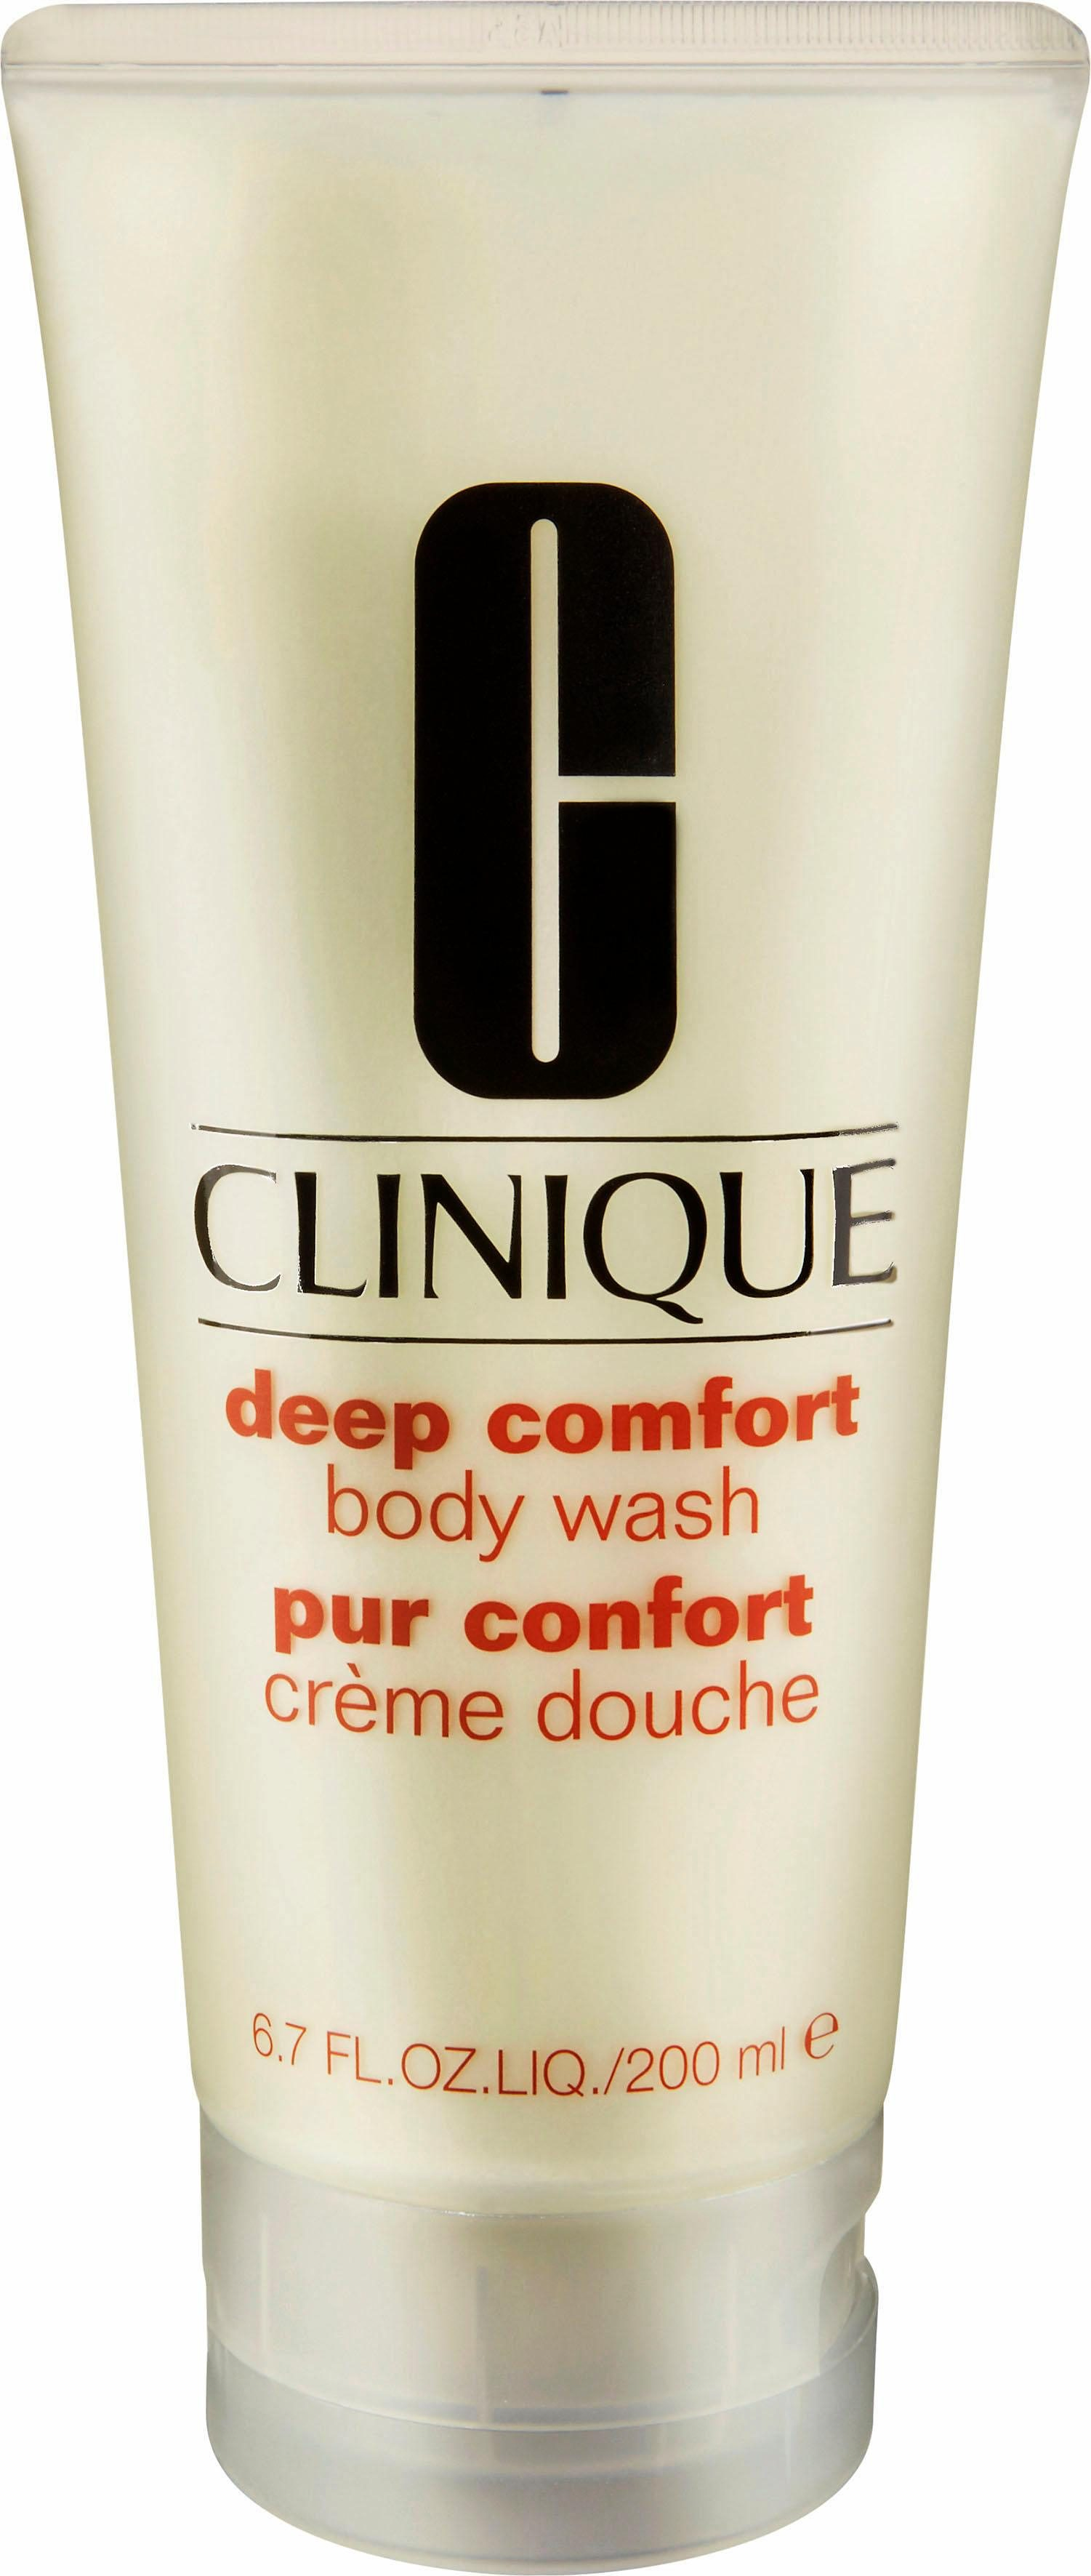 Clinique, »Deep Comfort Body Wash«, Duschgel